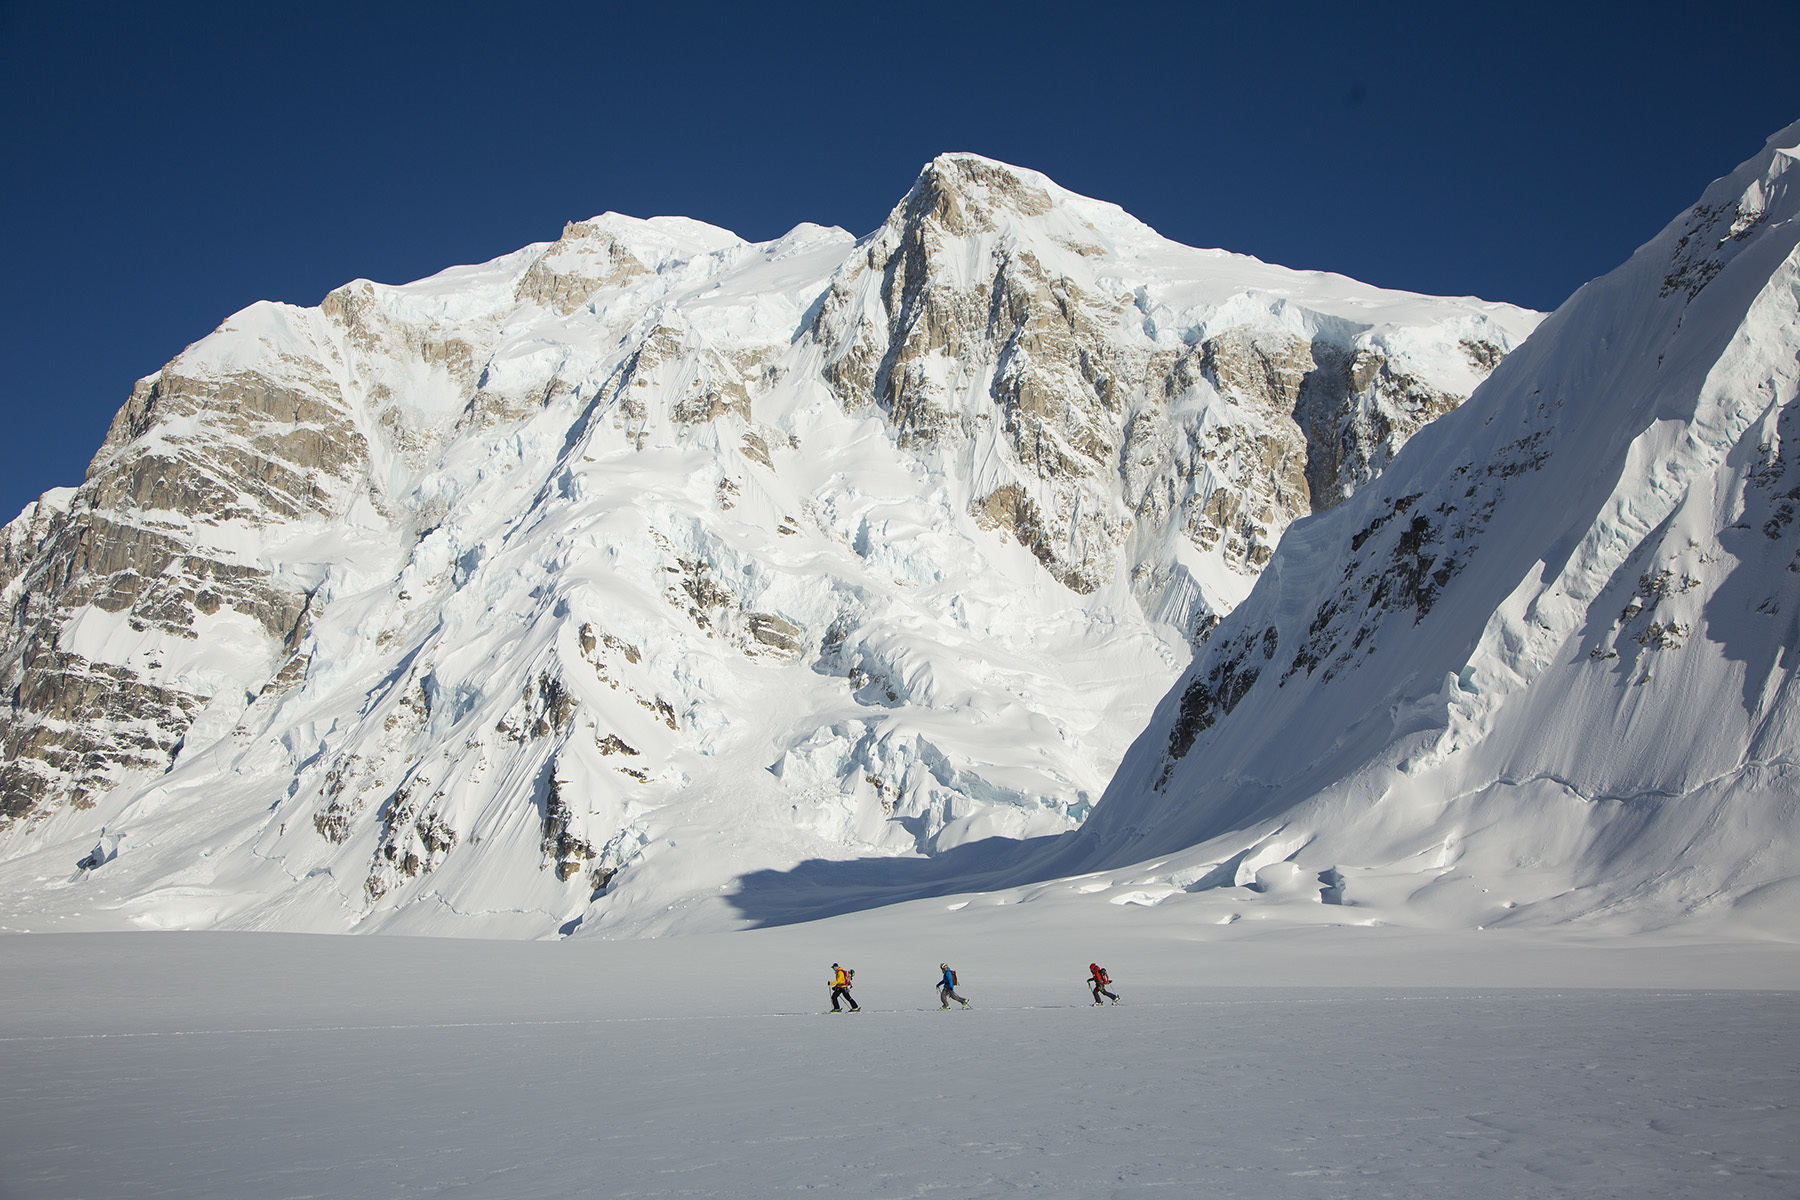 Ian McIntosh, John Collinson, Angel Collinson, Kahiltna Glacier and Mt. Hunter, Denail National Park, Alaska